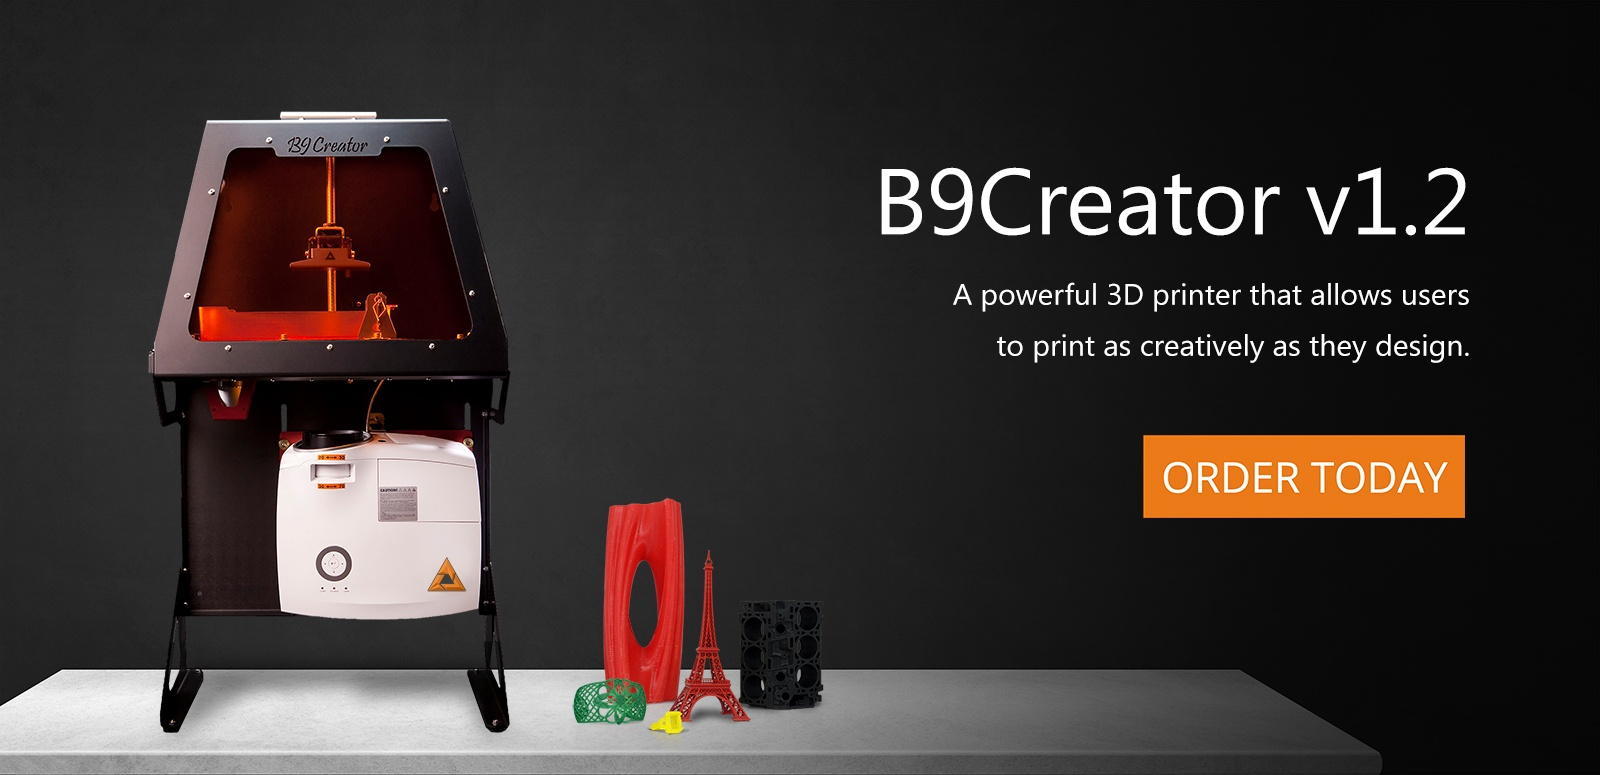 The B9Creator is the best 3D printer when it comes to resolution, versatility, and affordability.